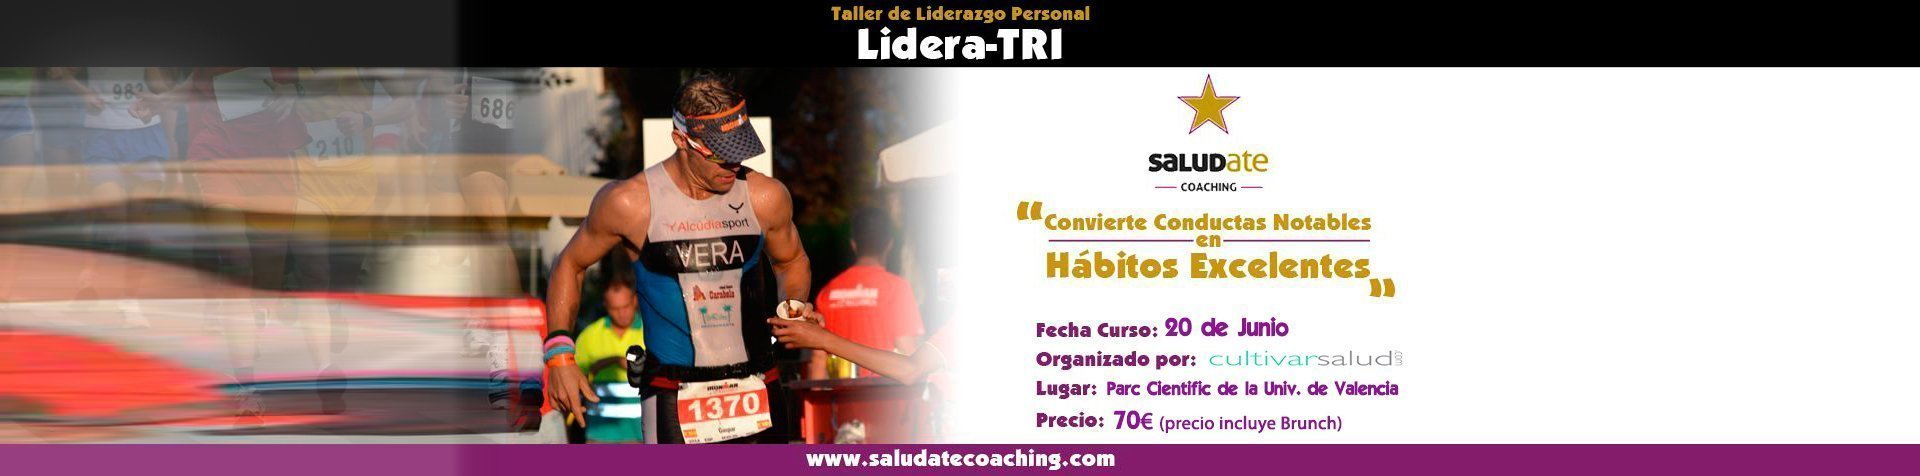 LideraTri-Personal-Red cultivarsalud